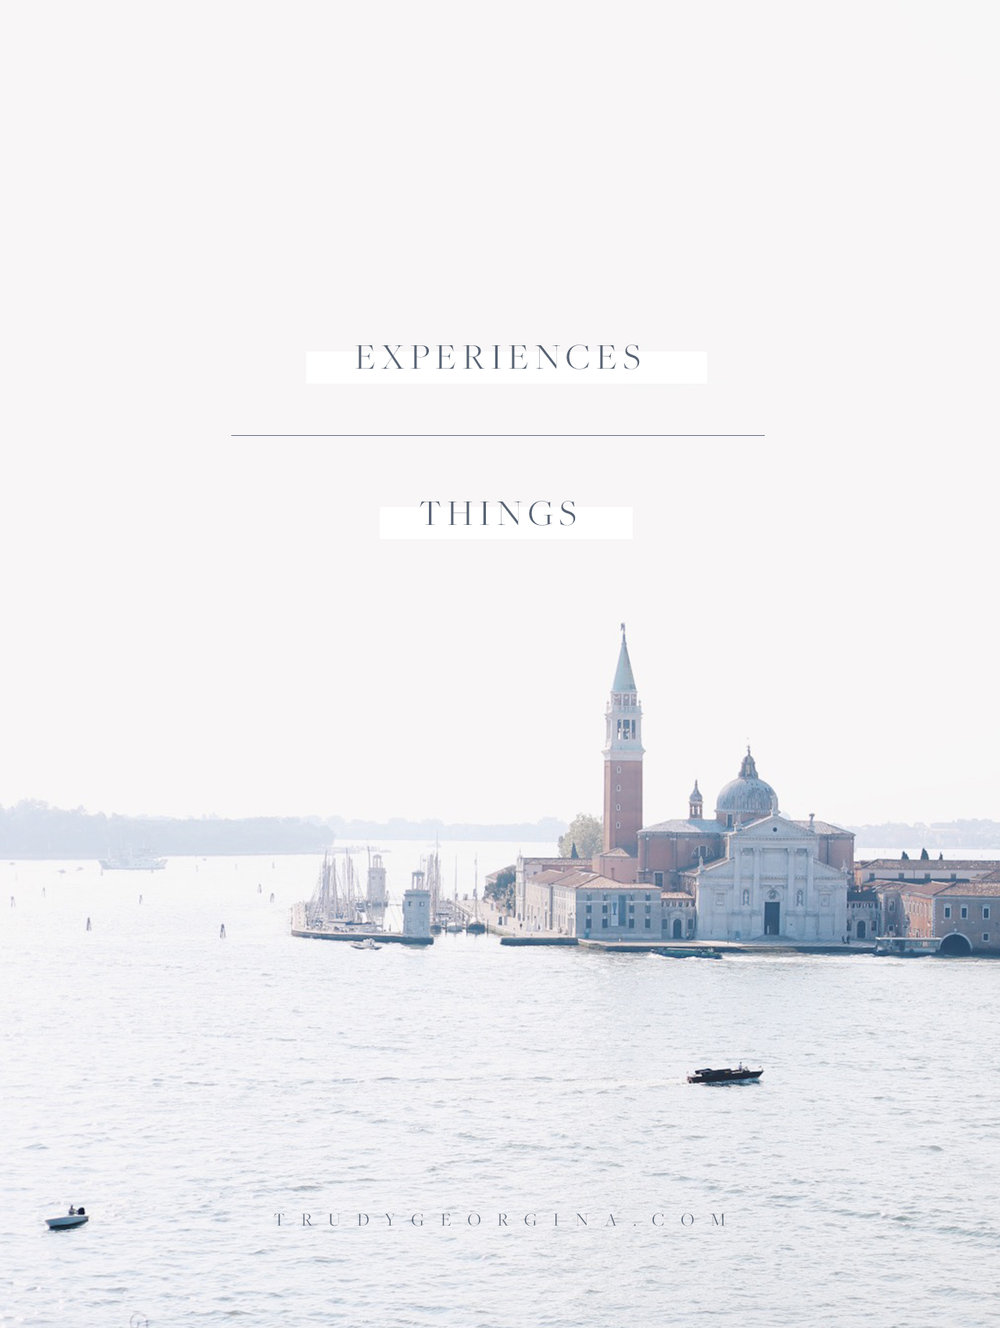 Experiences > things | trudygeorgina.com